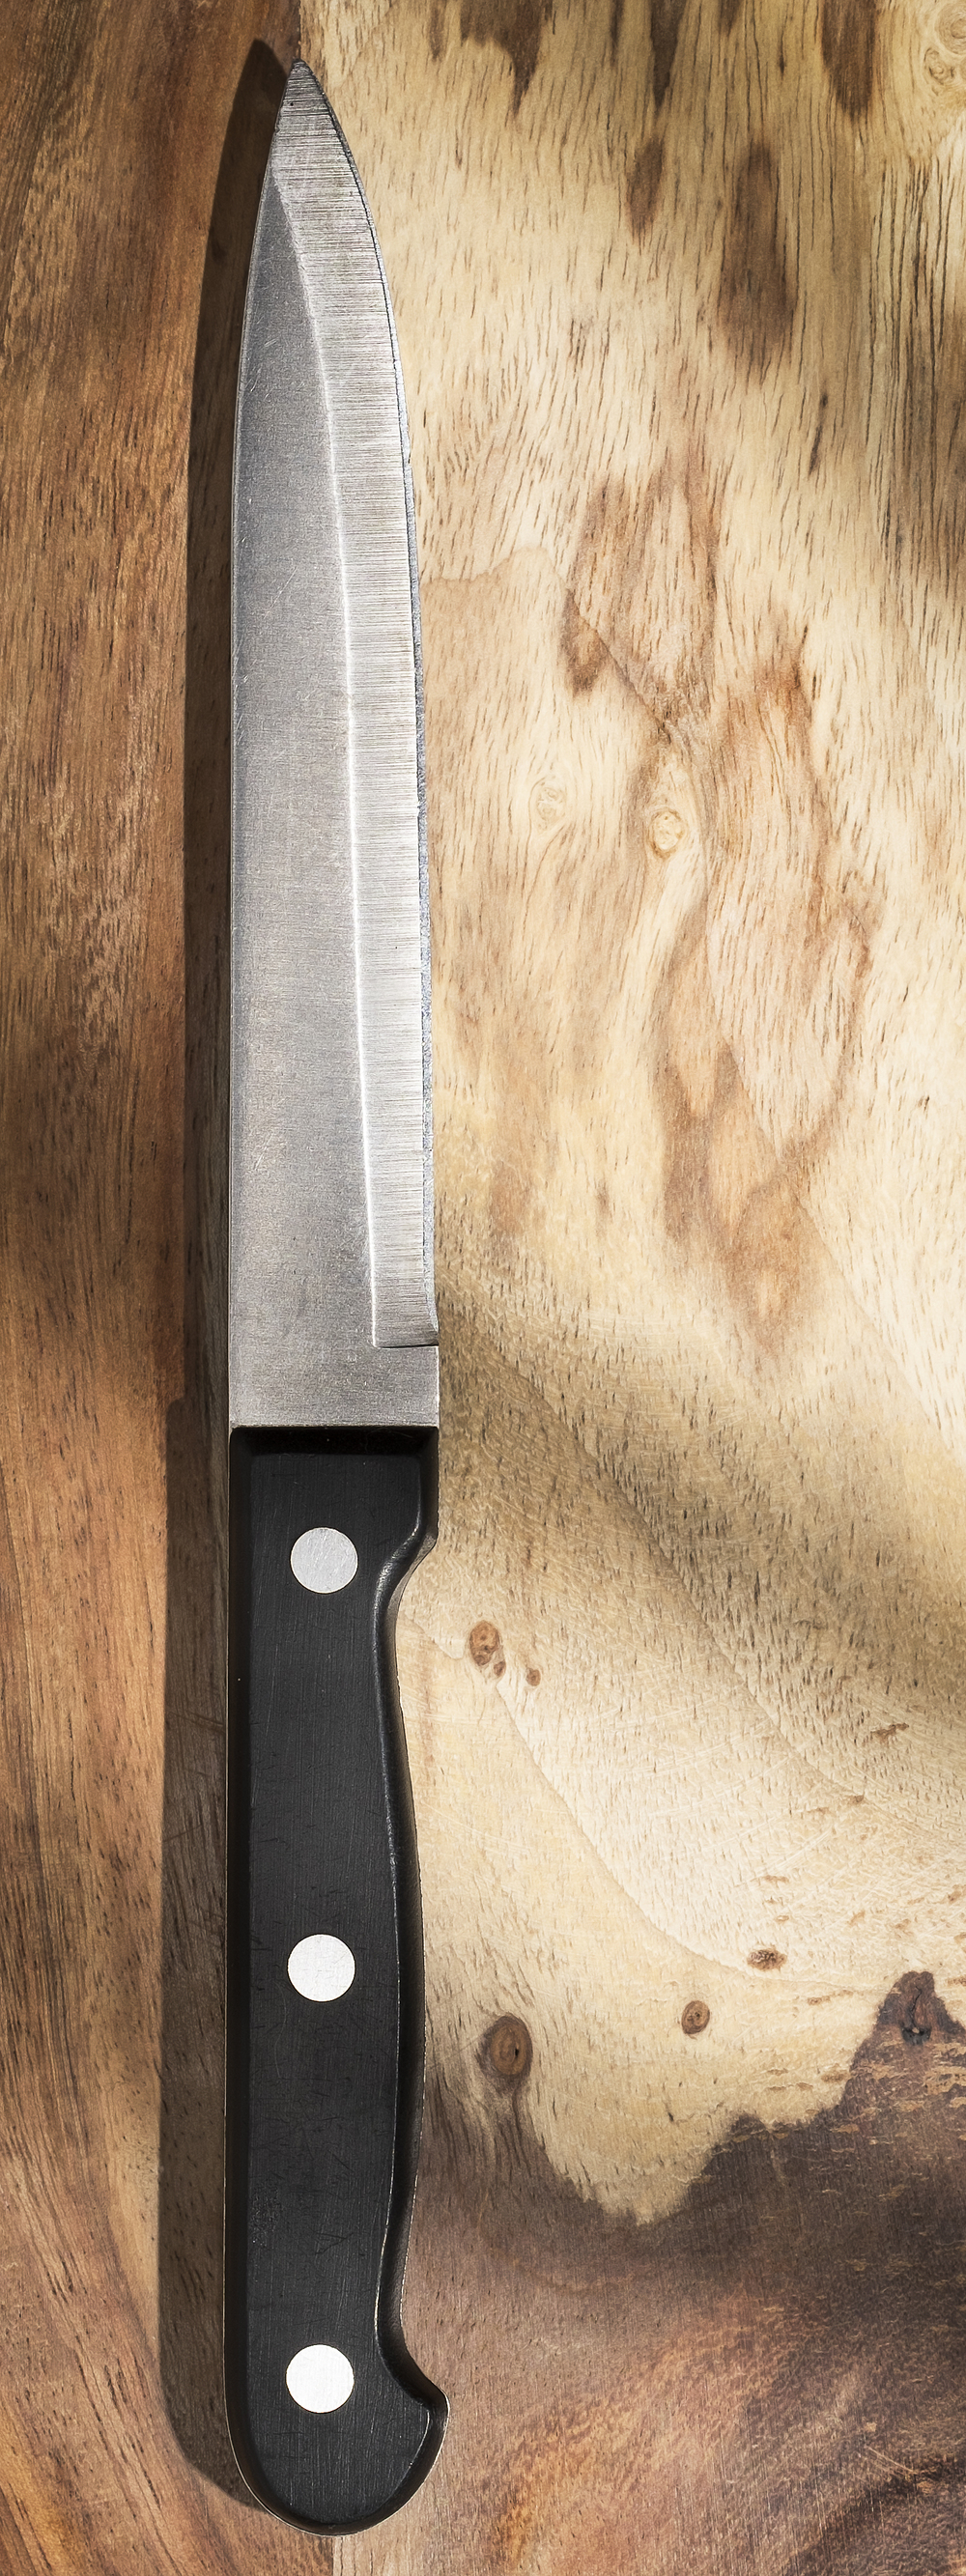 KNIFE AND WOOD-1.jpg